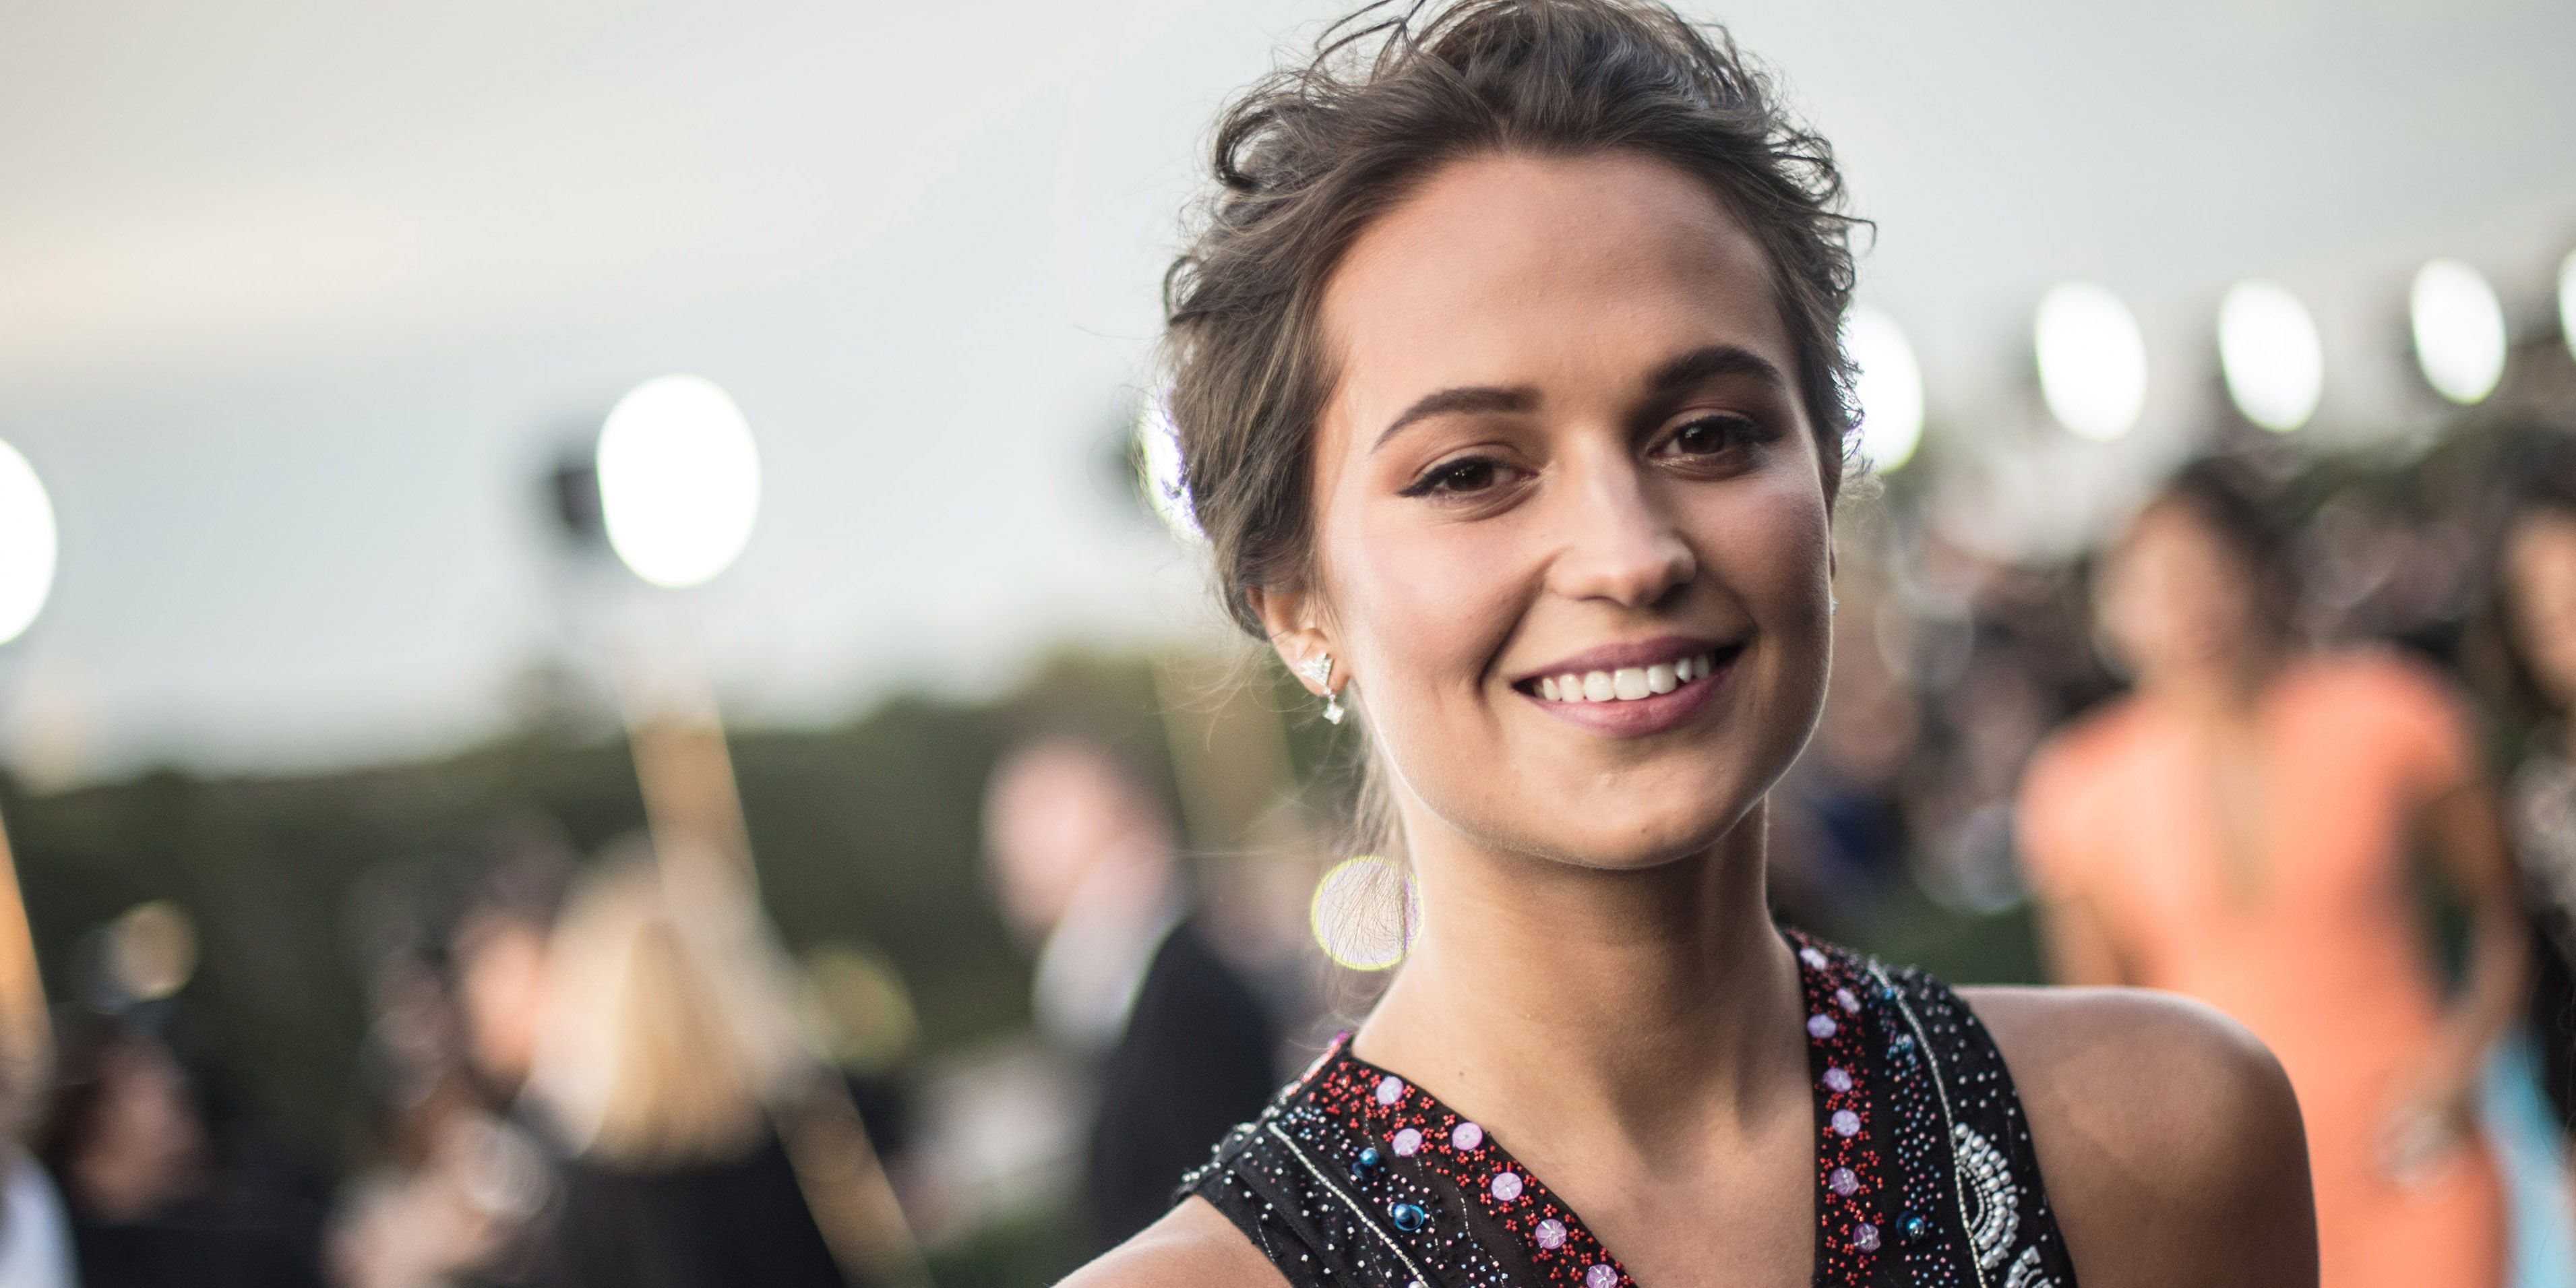 Photos Alicia Vikander nude photos 2019